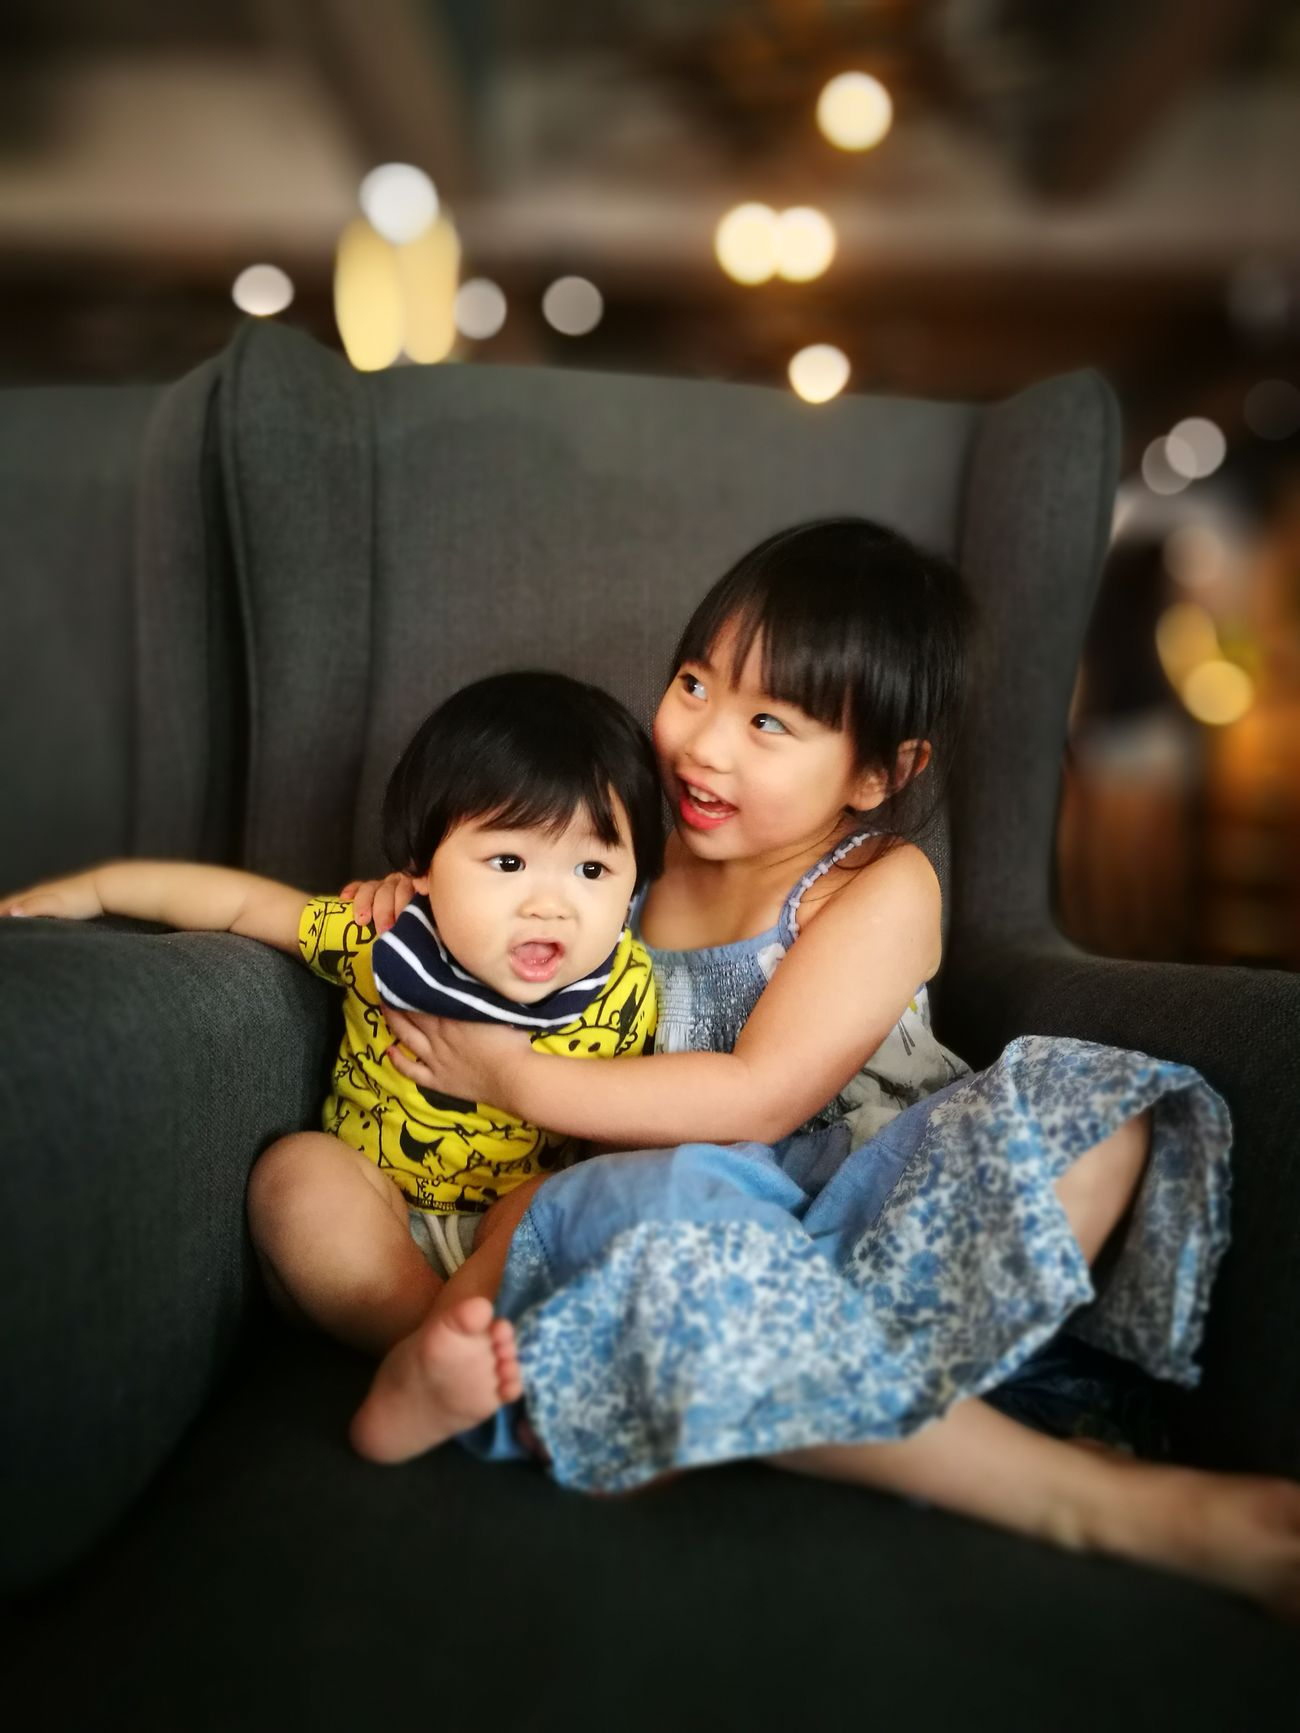 Child Females Males  Childhood Happiness Family Togetherness Boys Cheerful Offspring Lifestyles Sofa Smiling Two People Cute Bonding Son Indoors  siblings EyeEmNewHere